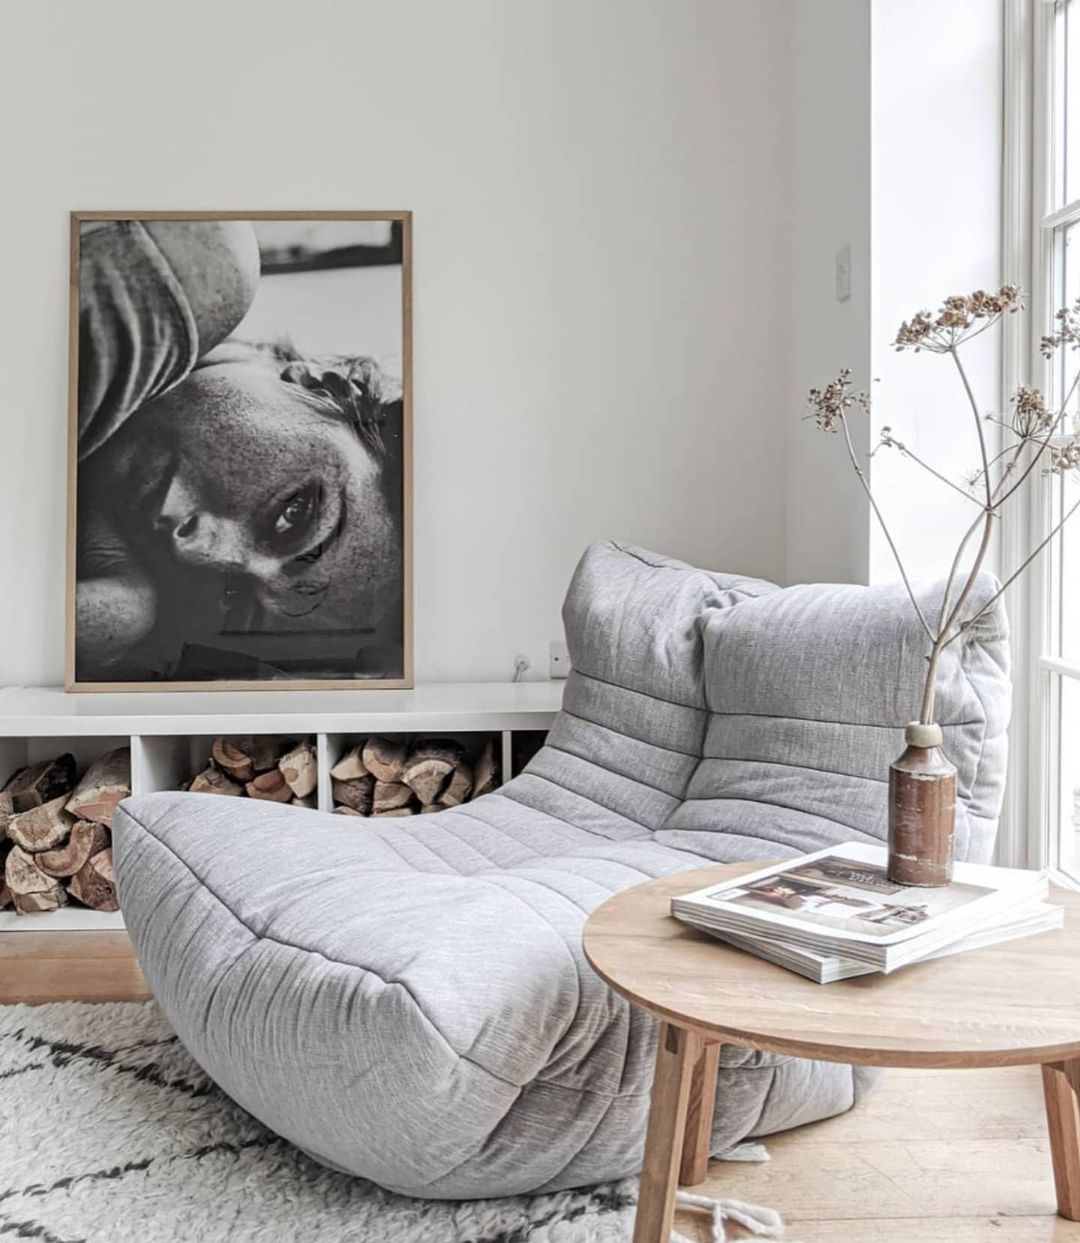 japandi interior design gray bean bag